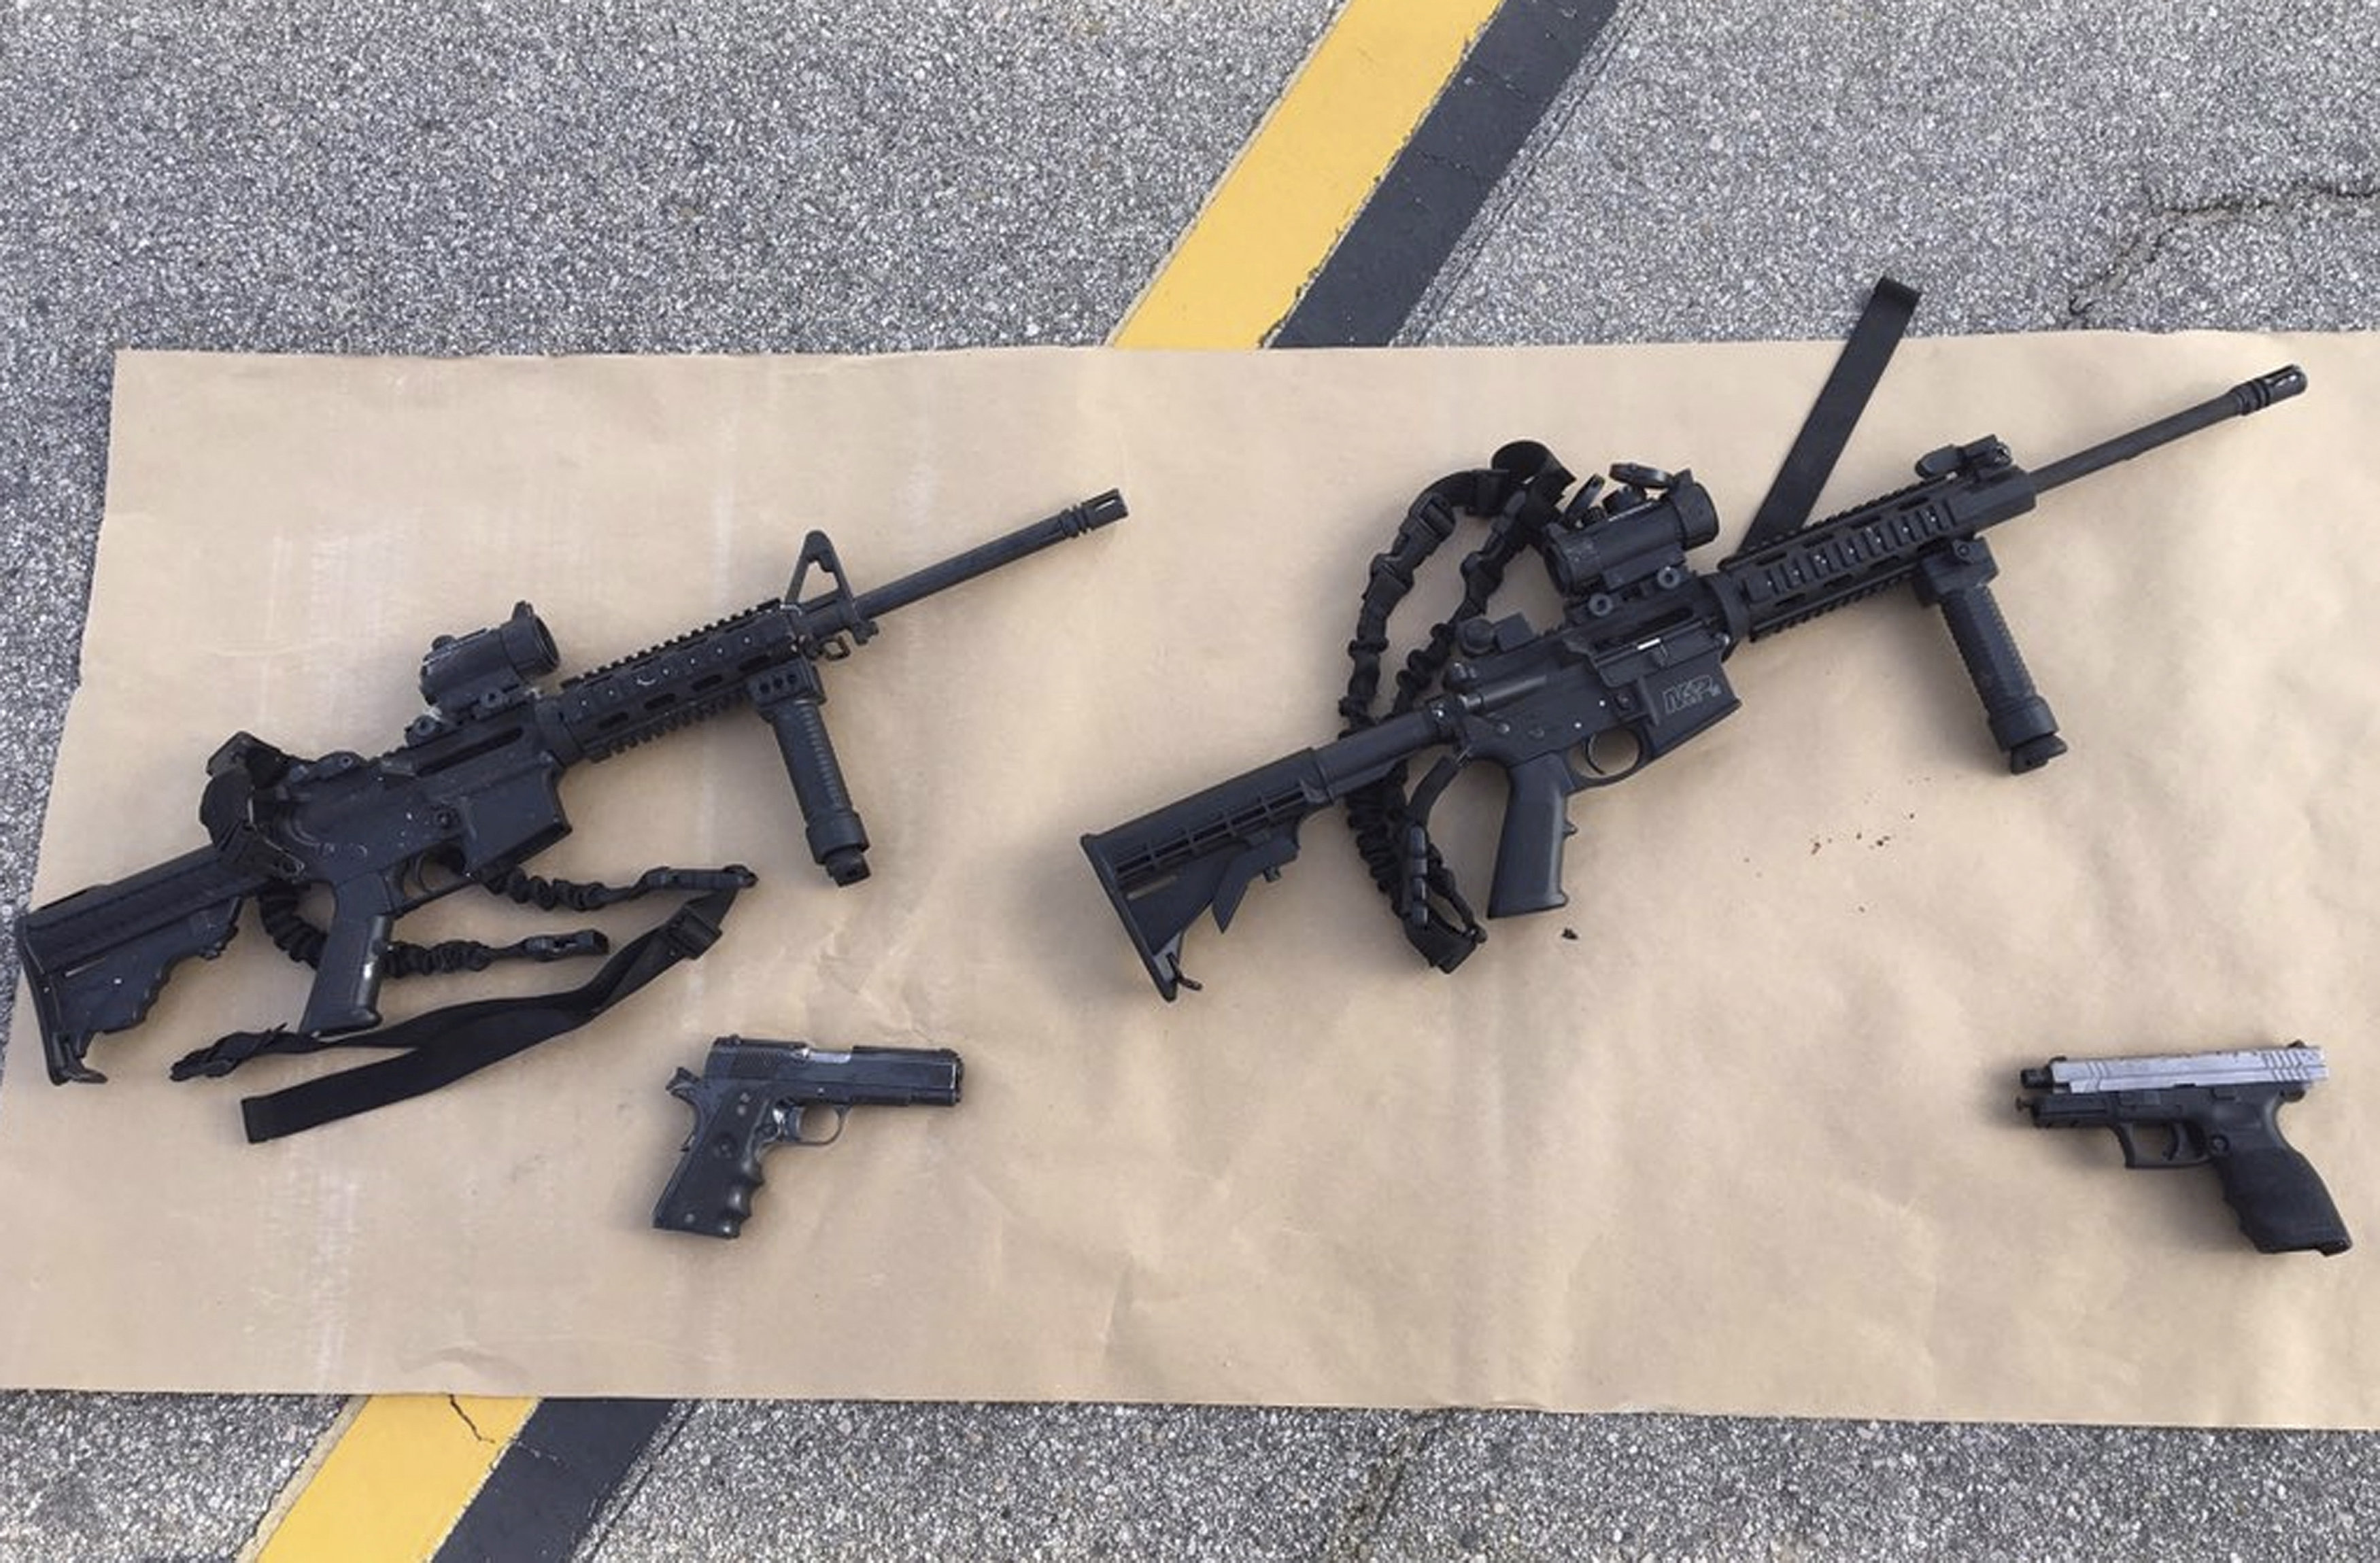 FILE PHOTO: Weapons confiscated from the attack in San Bernardino, California are shown in this San Bernardino County Sheriff Department handout photo from their Twitter account released to Reuters December 3, 2015. REUTERS/San Bernardino County Sheriffs Department/Handout/File Photo